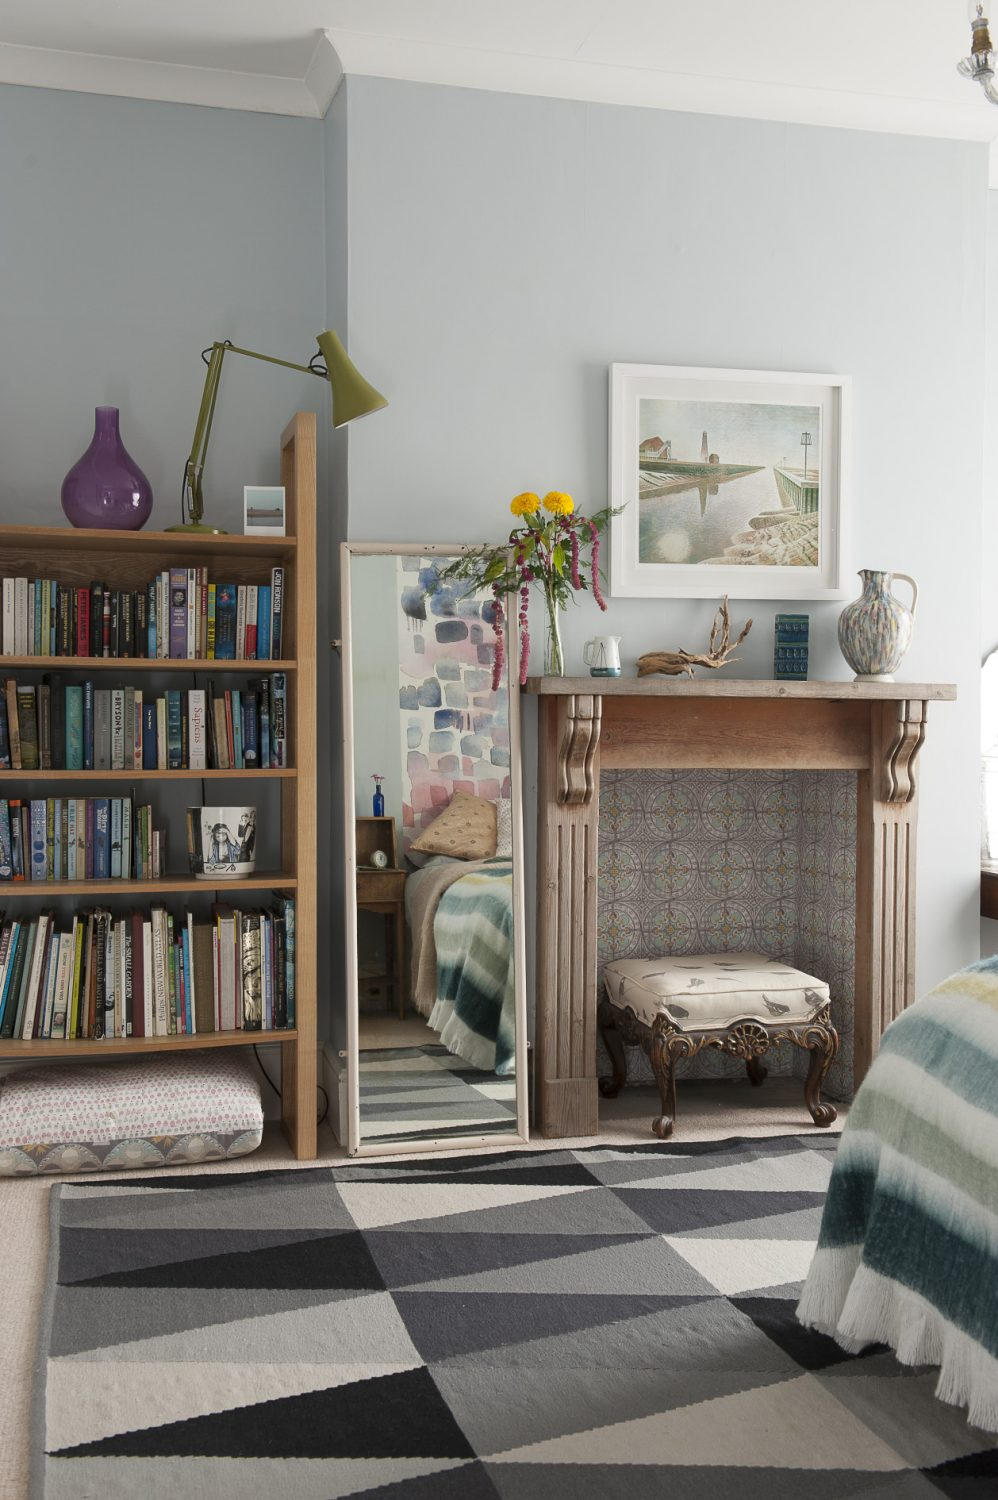 The print over the fireplace is by Eric Ravilious, a birthday present from husband Jonny. The footstool belonged to Louise's grandparents and has been recovered in her fabric Dot-to-Dot. The jug vase is from Snoopers Paradise in Brighton